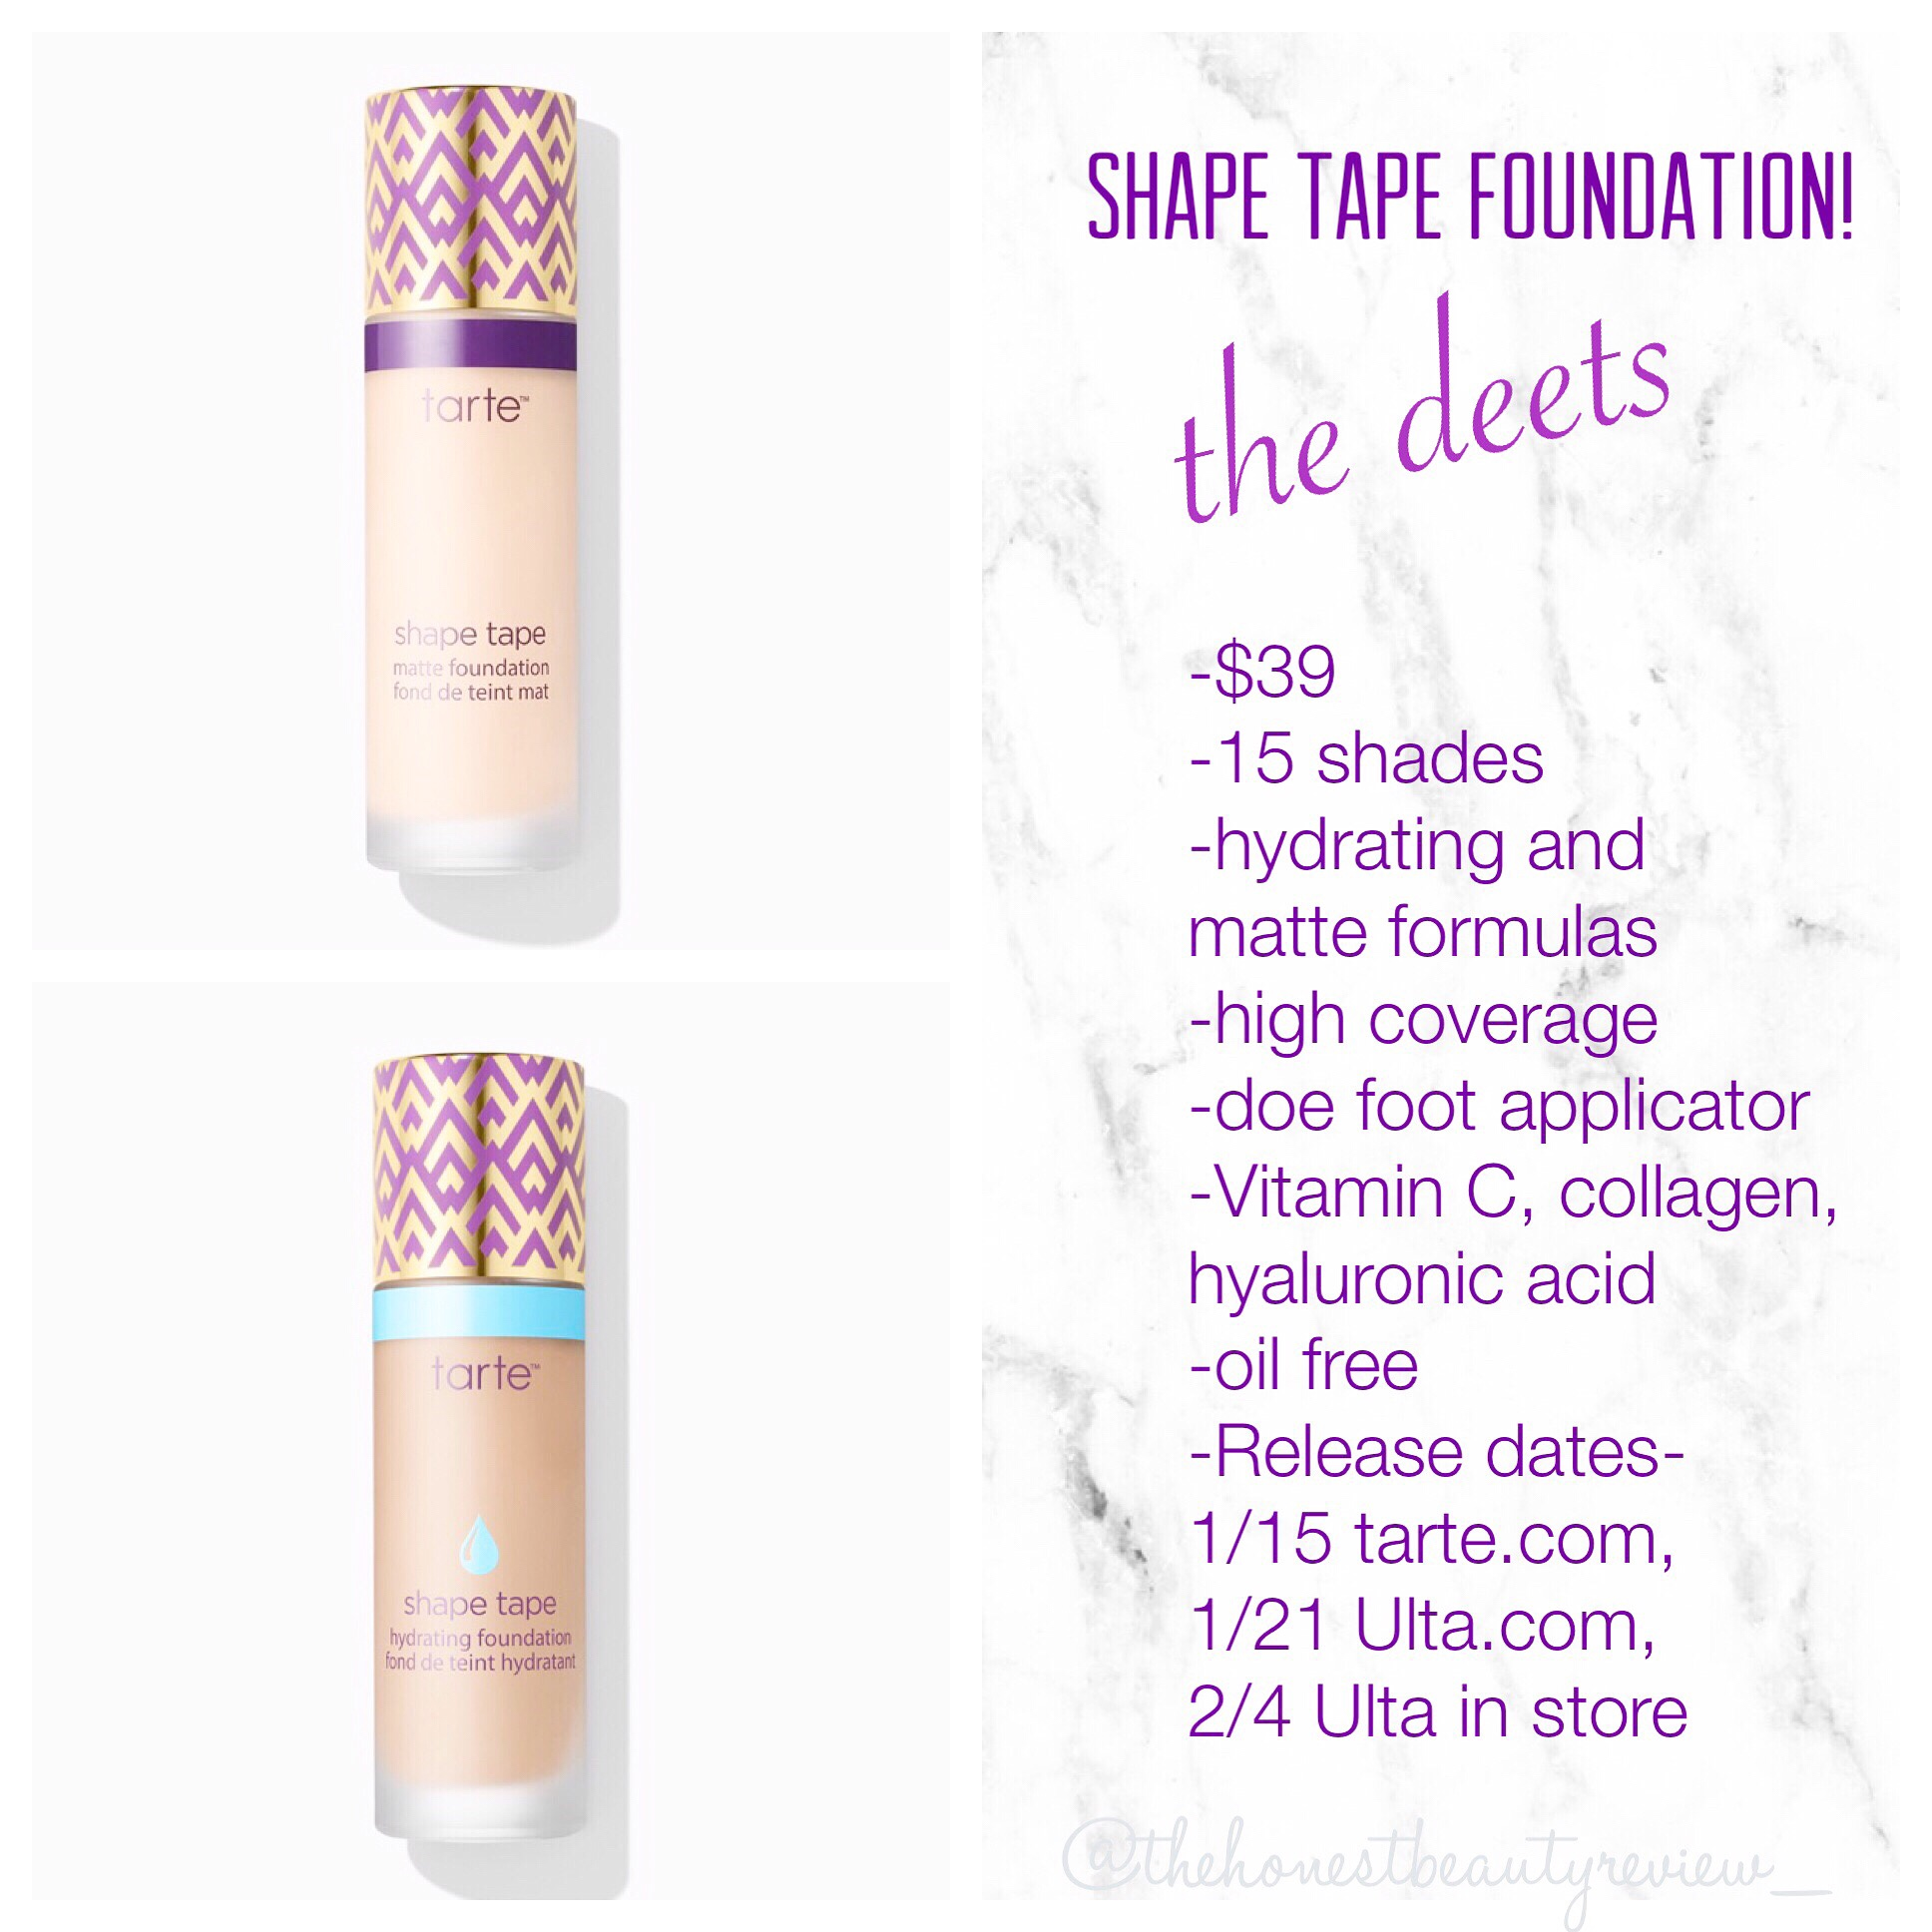 New Tarte Shape Tape Foundation The Details The Honest Beauty Review